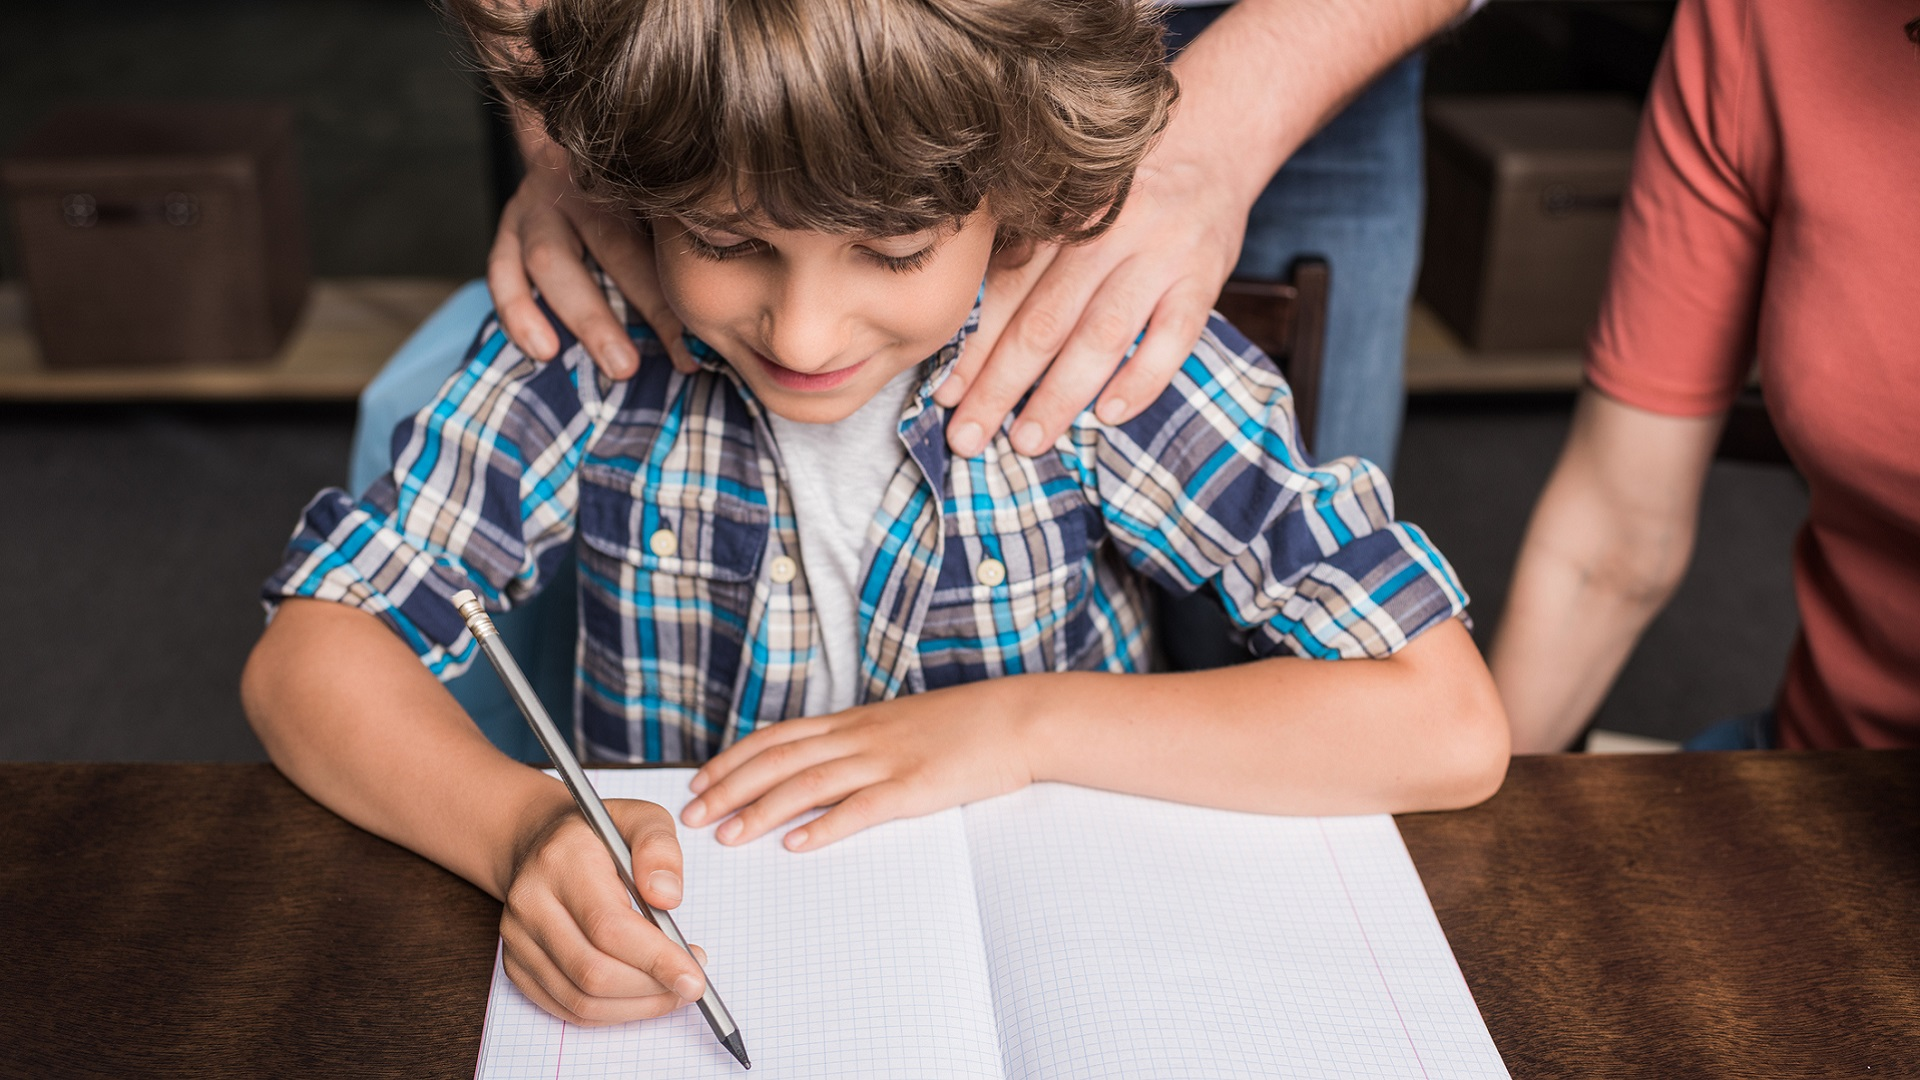 Nudge, Don't Nag: 9 Ways to Motivate Your Child to Do Well